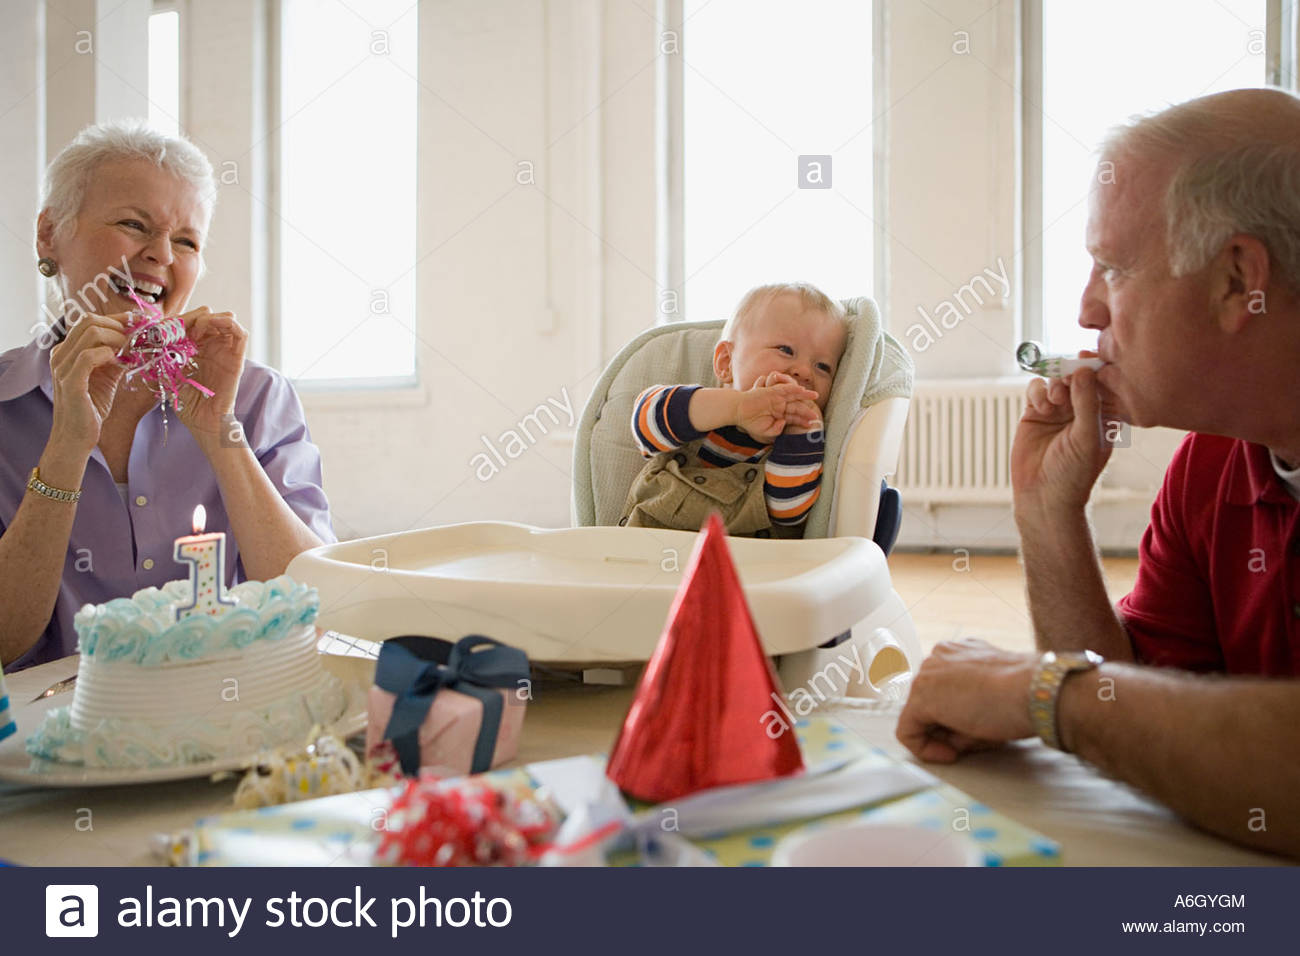 Grandparents at babys birthday party - Stock Image